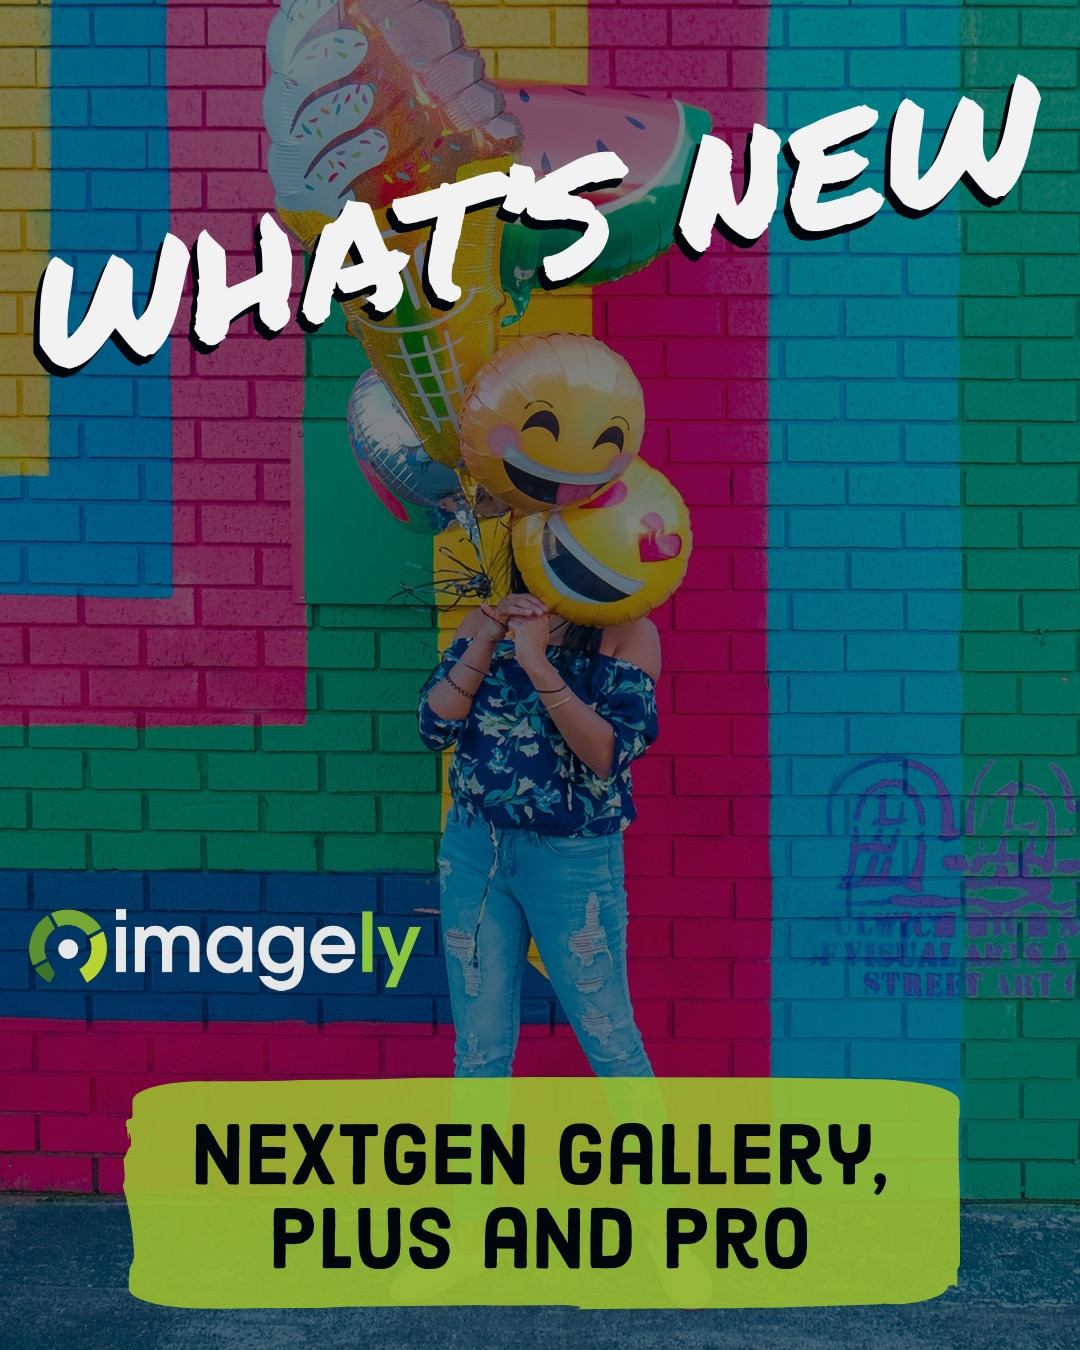 NextGEN Gallery 3.1.10 Now Available